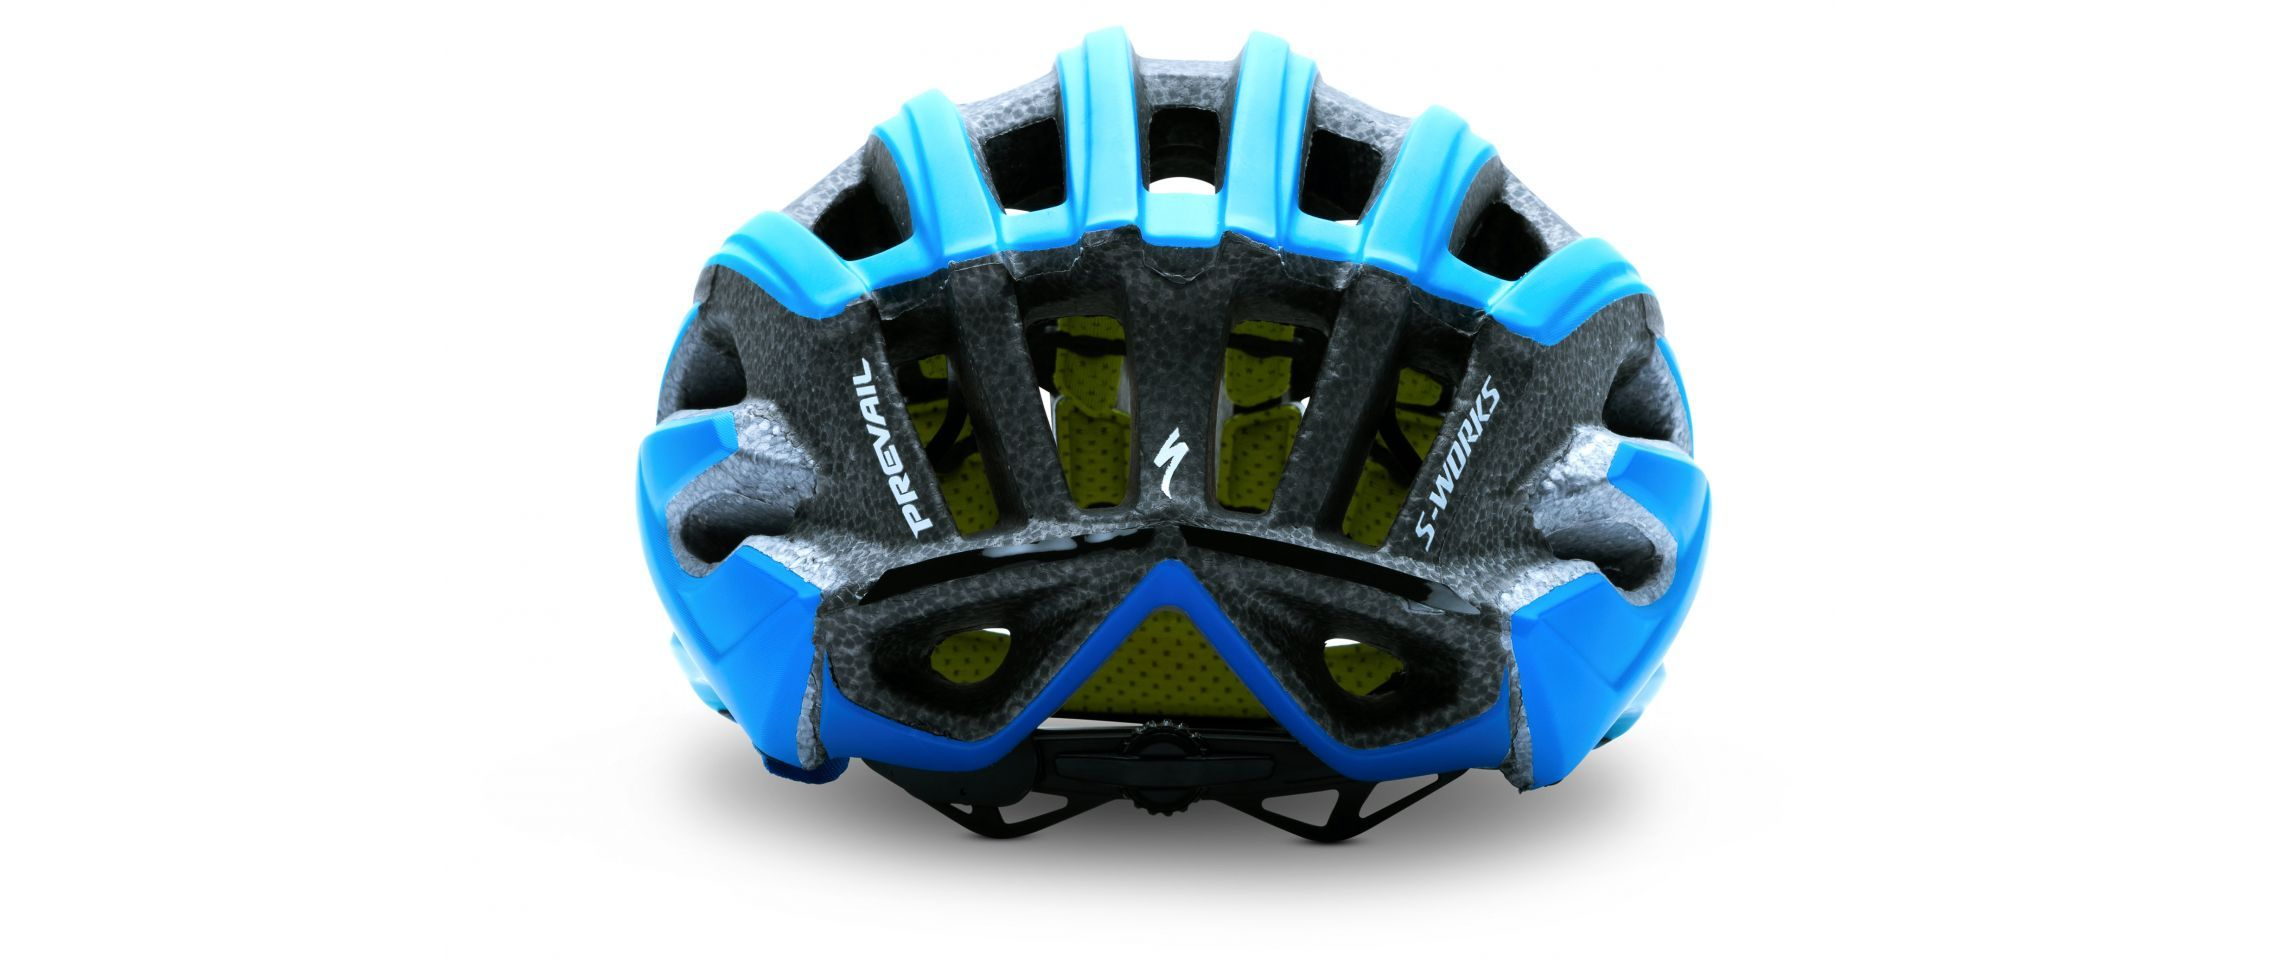 S-Works Prevail II Mips Casco Ciclismo Carretera Specialized Down Under 2 IBKBike.es